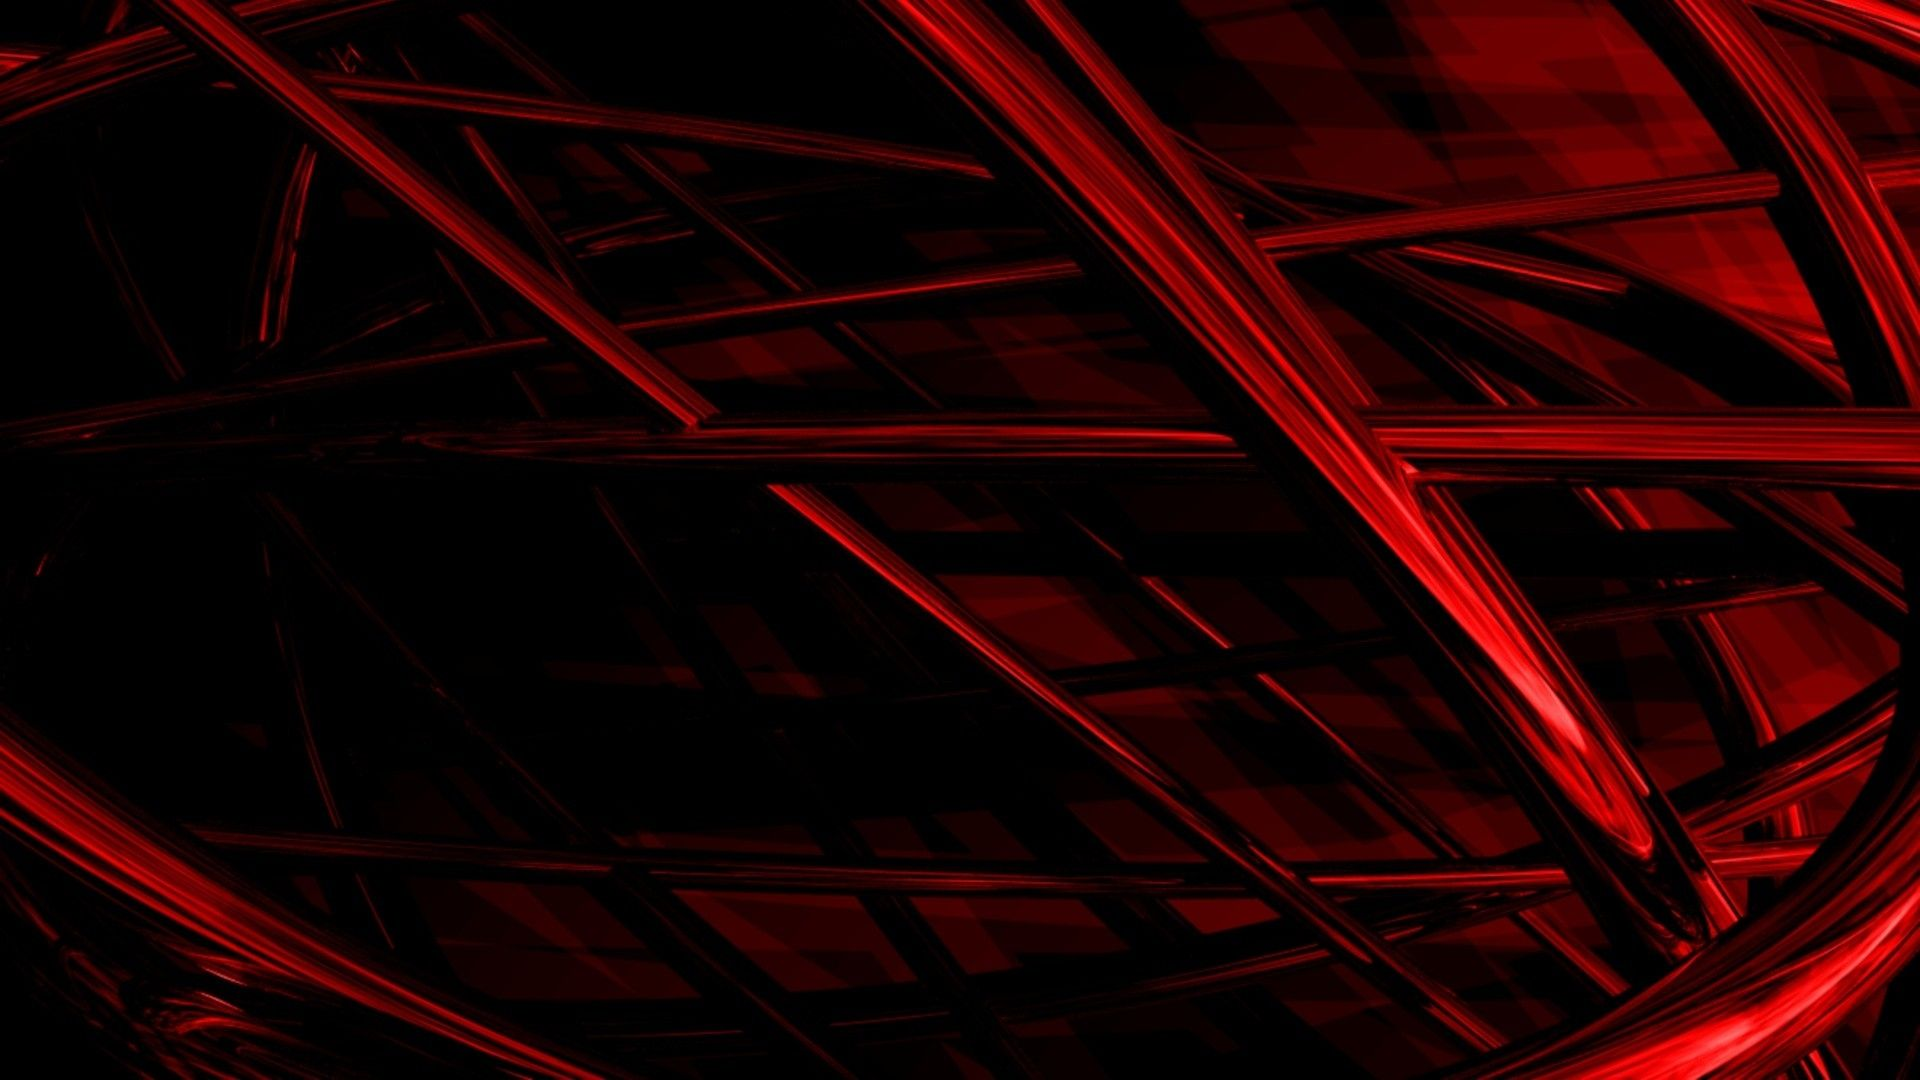 Download Wallpaper 1920x1080 Lines Woven Dark Shadow Red Full Hd 1080p Hd Background With Images Dark Red Wallpaper Red And Black Wallpaper Dark Red Background